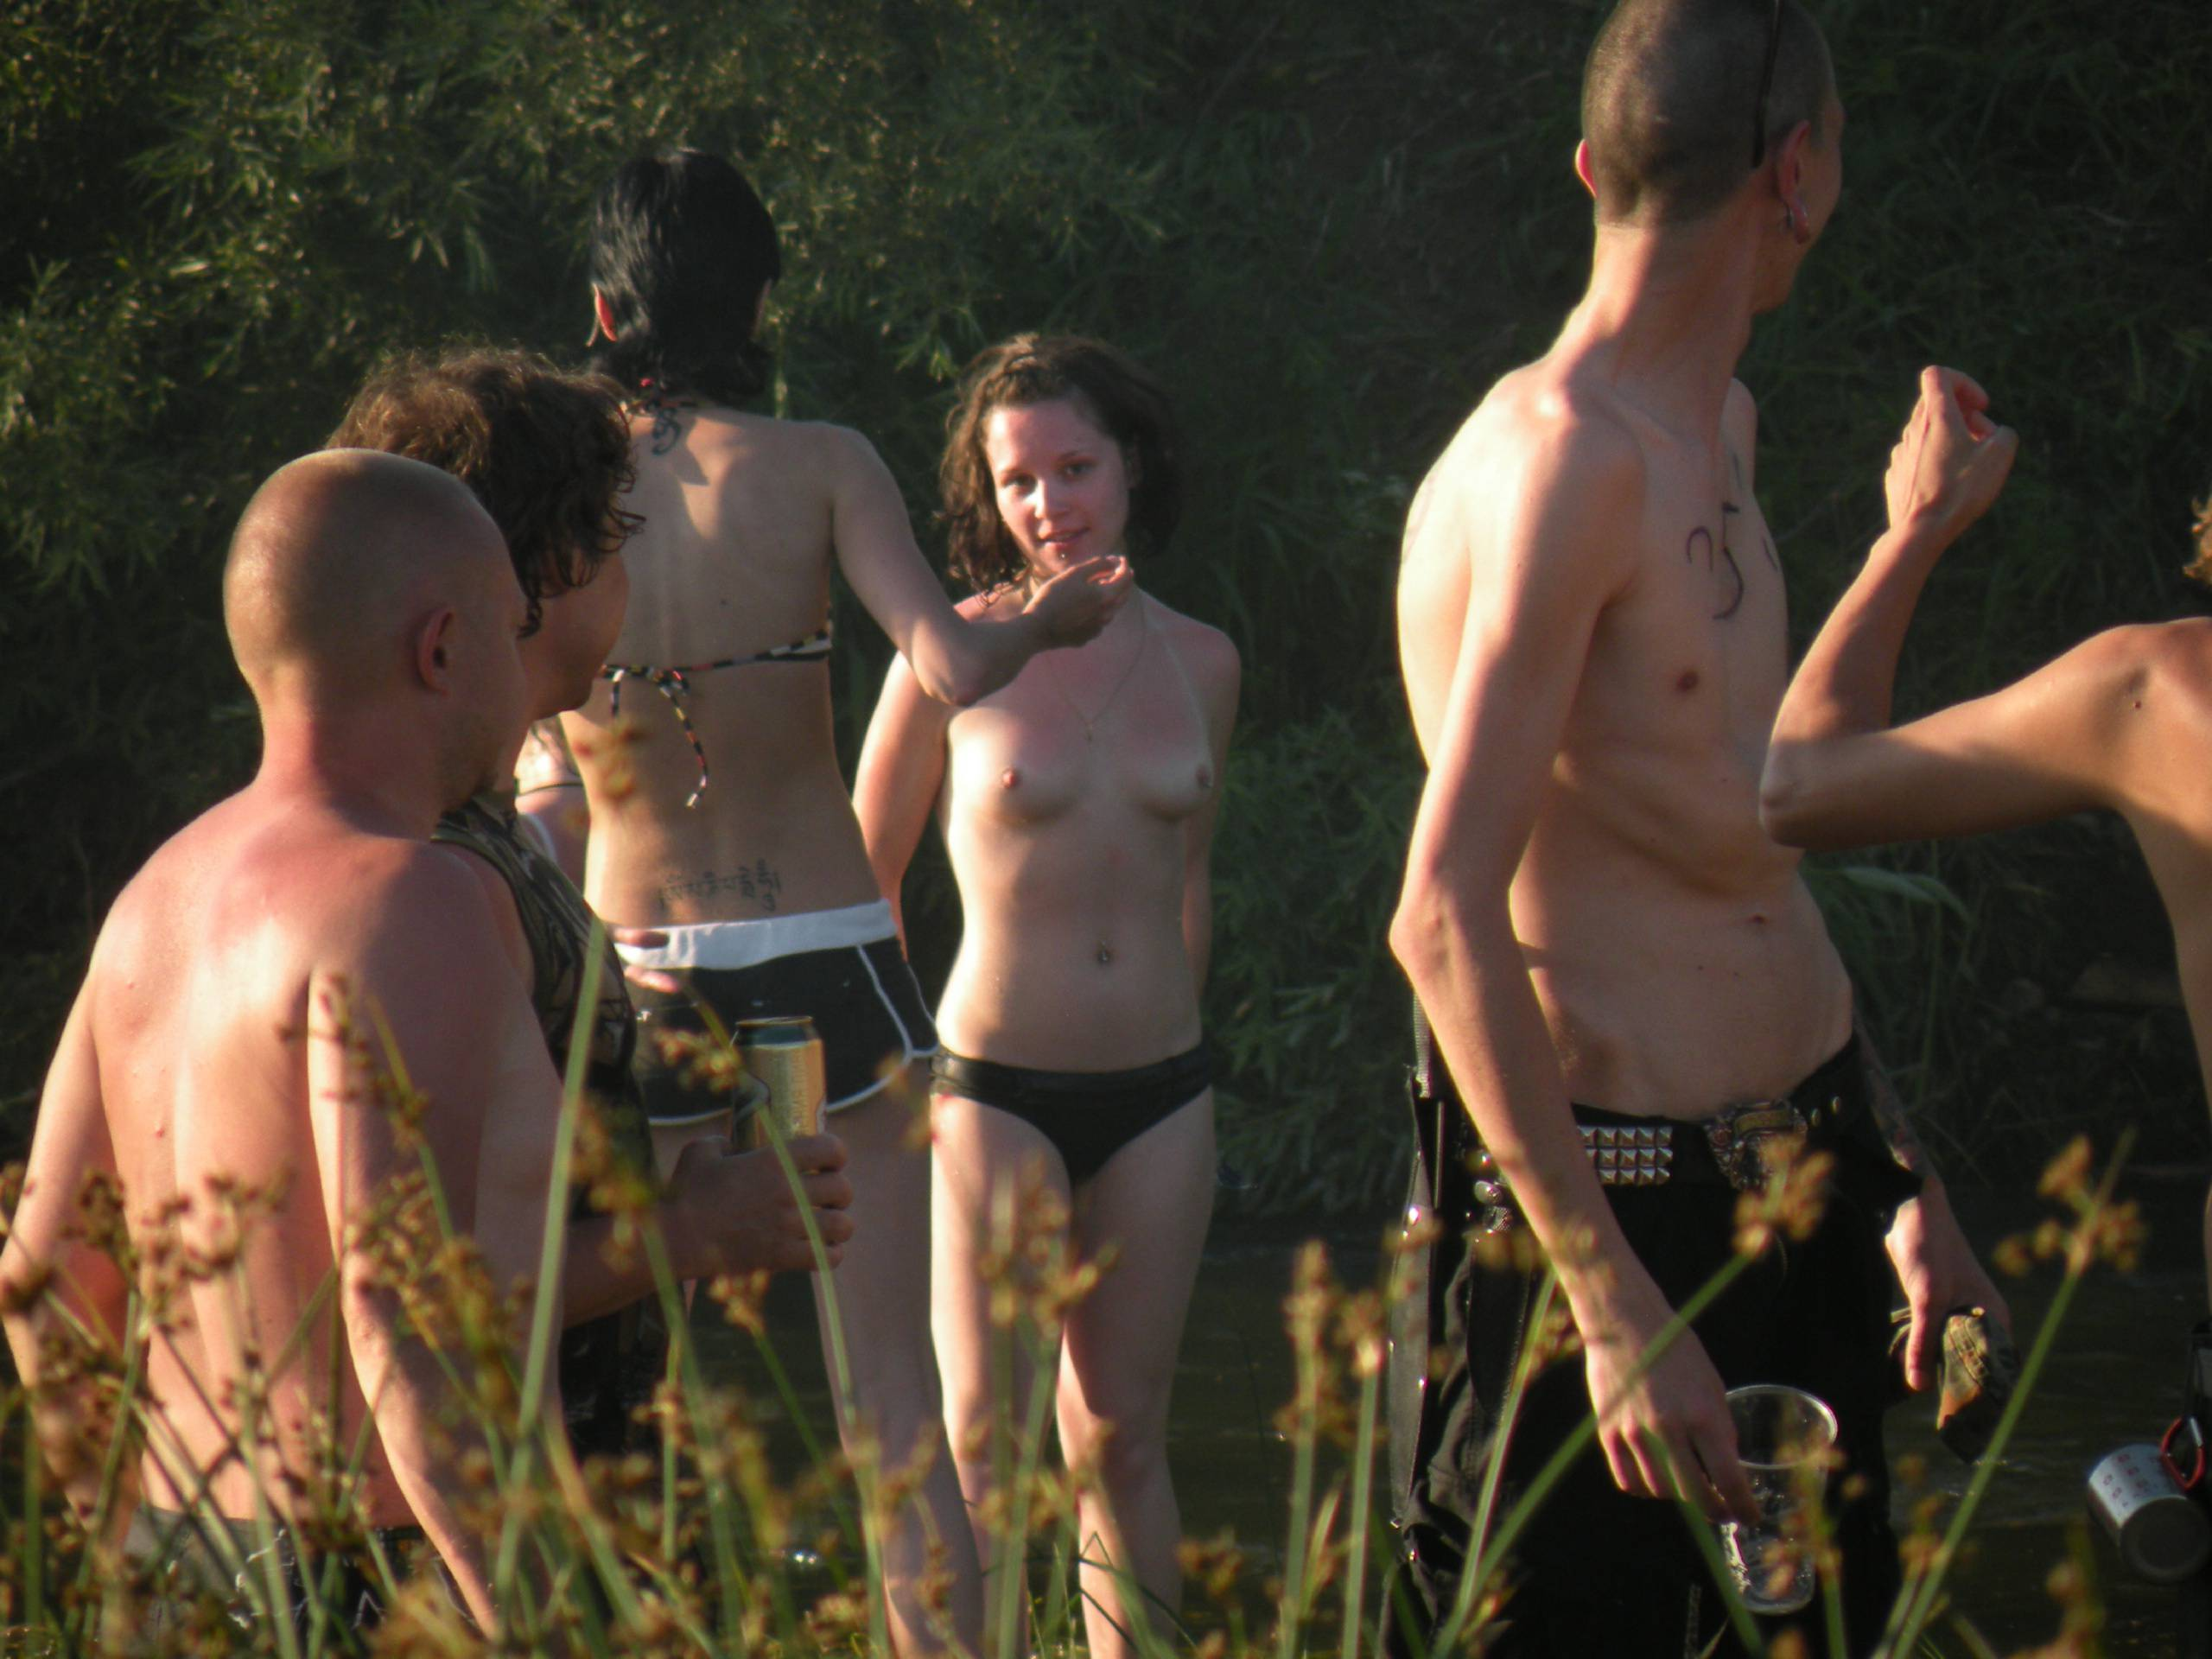 Nudist Amateur Life - 2